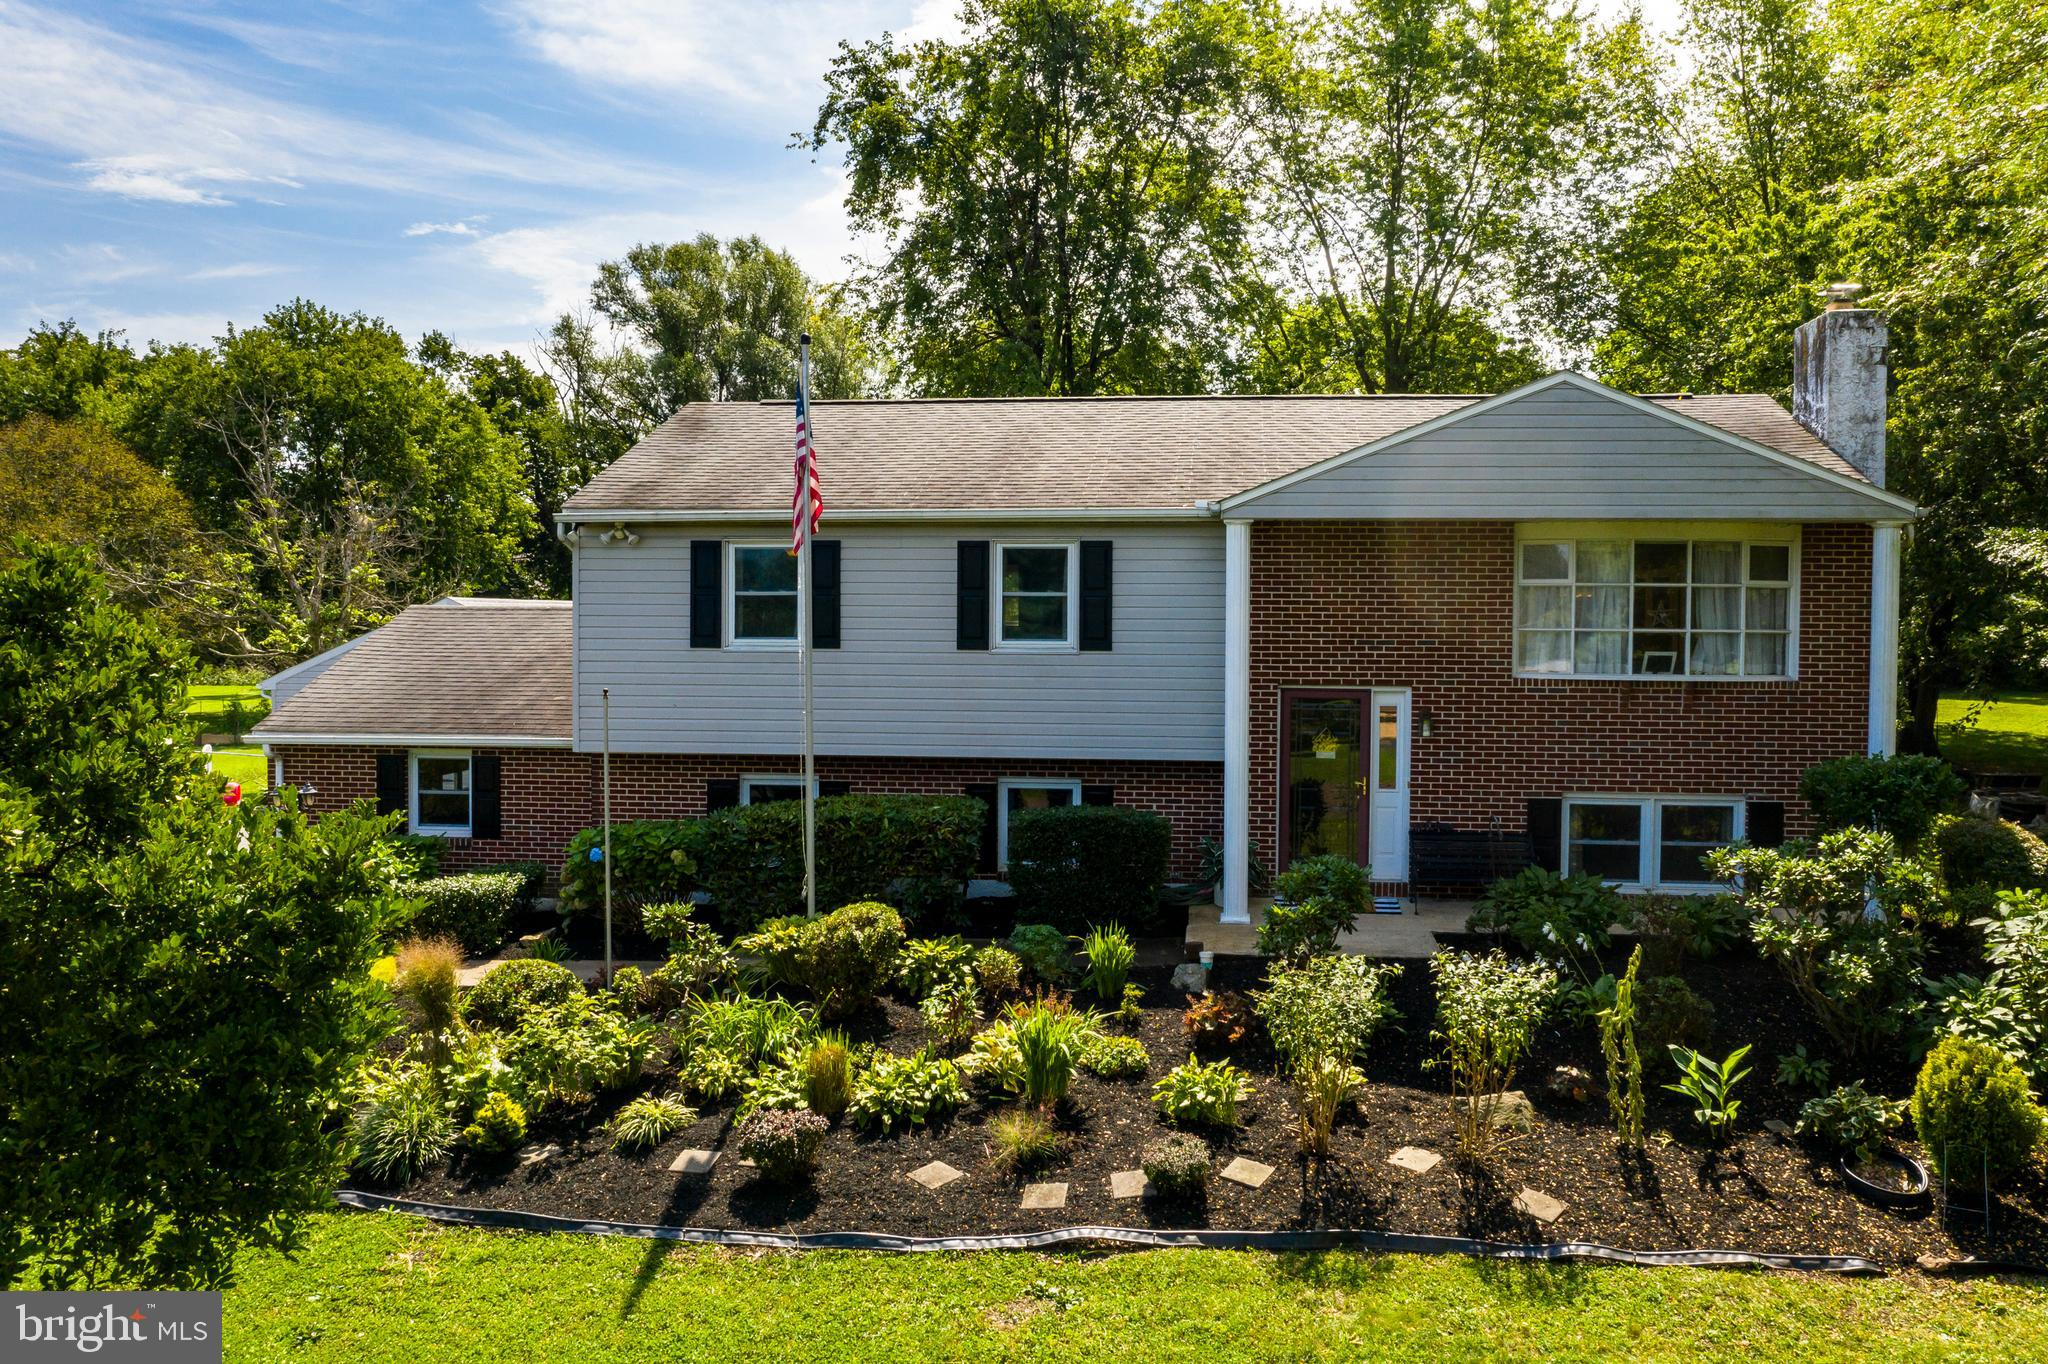 Charming, spacious 4 bed 2.5 bath home on a picturesque one acre lot in Owen J Roberts school district. Complete with an oversized 2-car garage, a generous detached garage with office, as well as a large shed to please the hobby enthusiast and exceed your storage needs.  Main floor living spaces and bedrooms boast hardwood flooring.  Kitchen has been renovated to include granite countertops, marble tile backsplash, soft-close cabinetry, undermount SS sink, and recessed lighting.  A picture window with a granite counter for bar stool seating completes the kitchen and provides an open layout for entertaining in the dining and living rooms.  Bathrooms on this floor have also been updated and include luxury vinyl tile flooring.  The lower level family room features a brick wood-burning fireplace, newly installed built-in cabinetry and shelving perfect for decorative office space and storage; you'll also find a separate laundry room here.  A new A/C was just installed in spring 2020.  As if this wasn't enough, add a large flat backyard, beautiful backdrop of trees, mature landscaping with annual flower garden, and a large newly-built deck and covered patio perfect for outdoor entertaining-- the ideal outdoor oasis!  Hurry, this home won't last long!